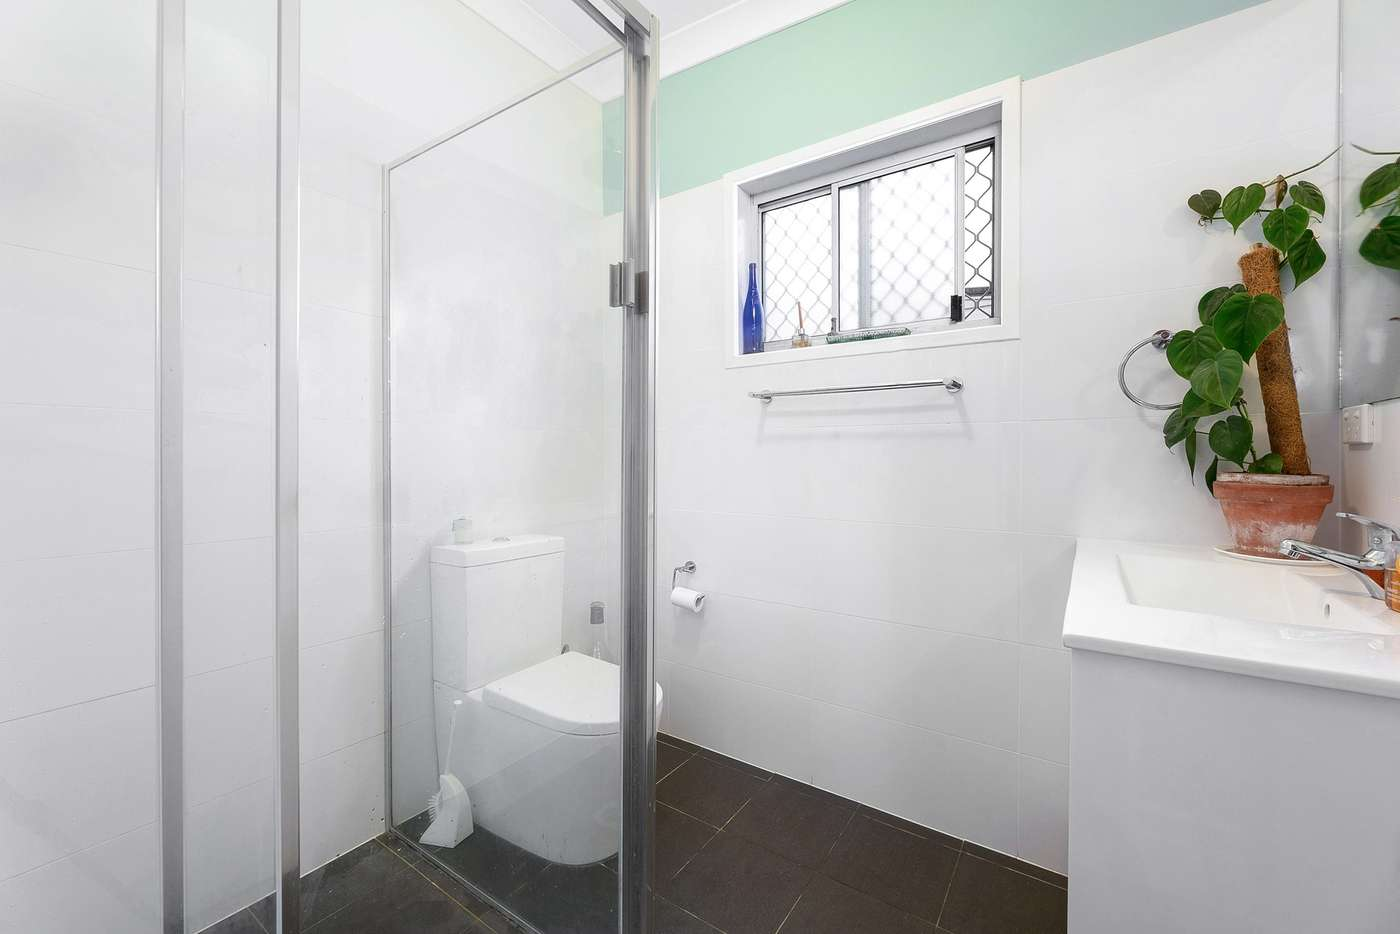 Sixth view of Homely house listing, 17 Hampstead Road, Auburn NSW 2144